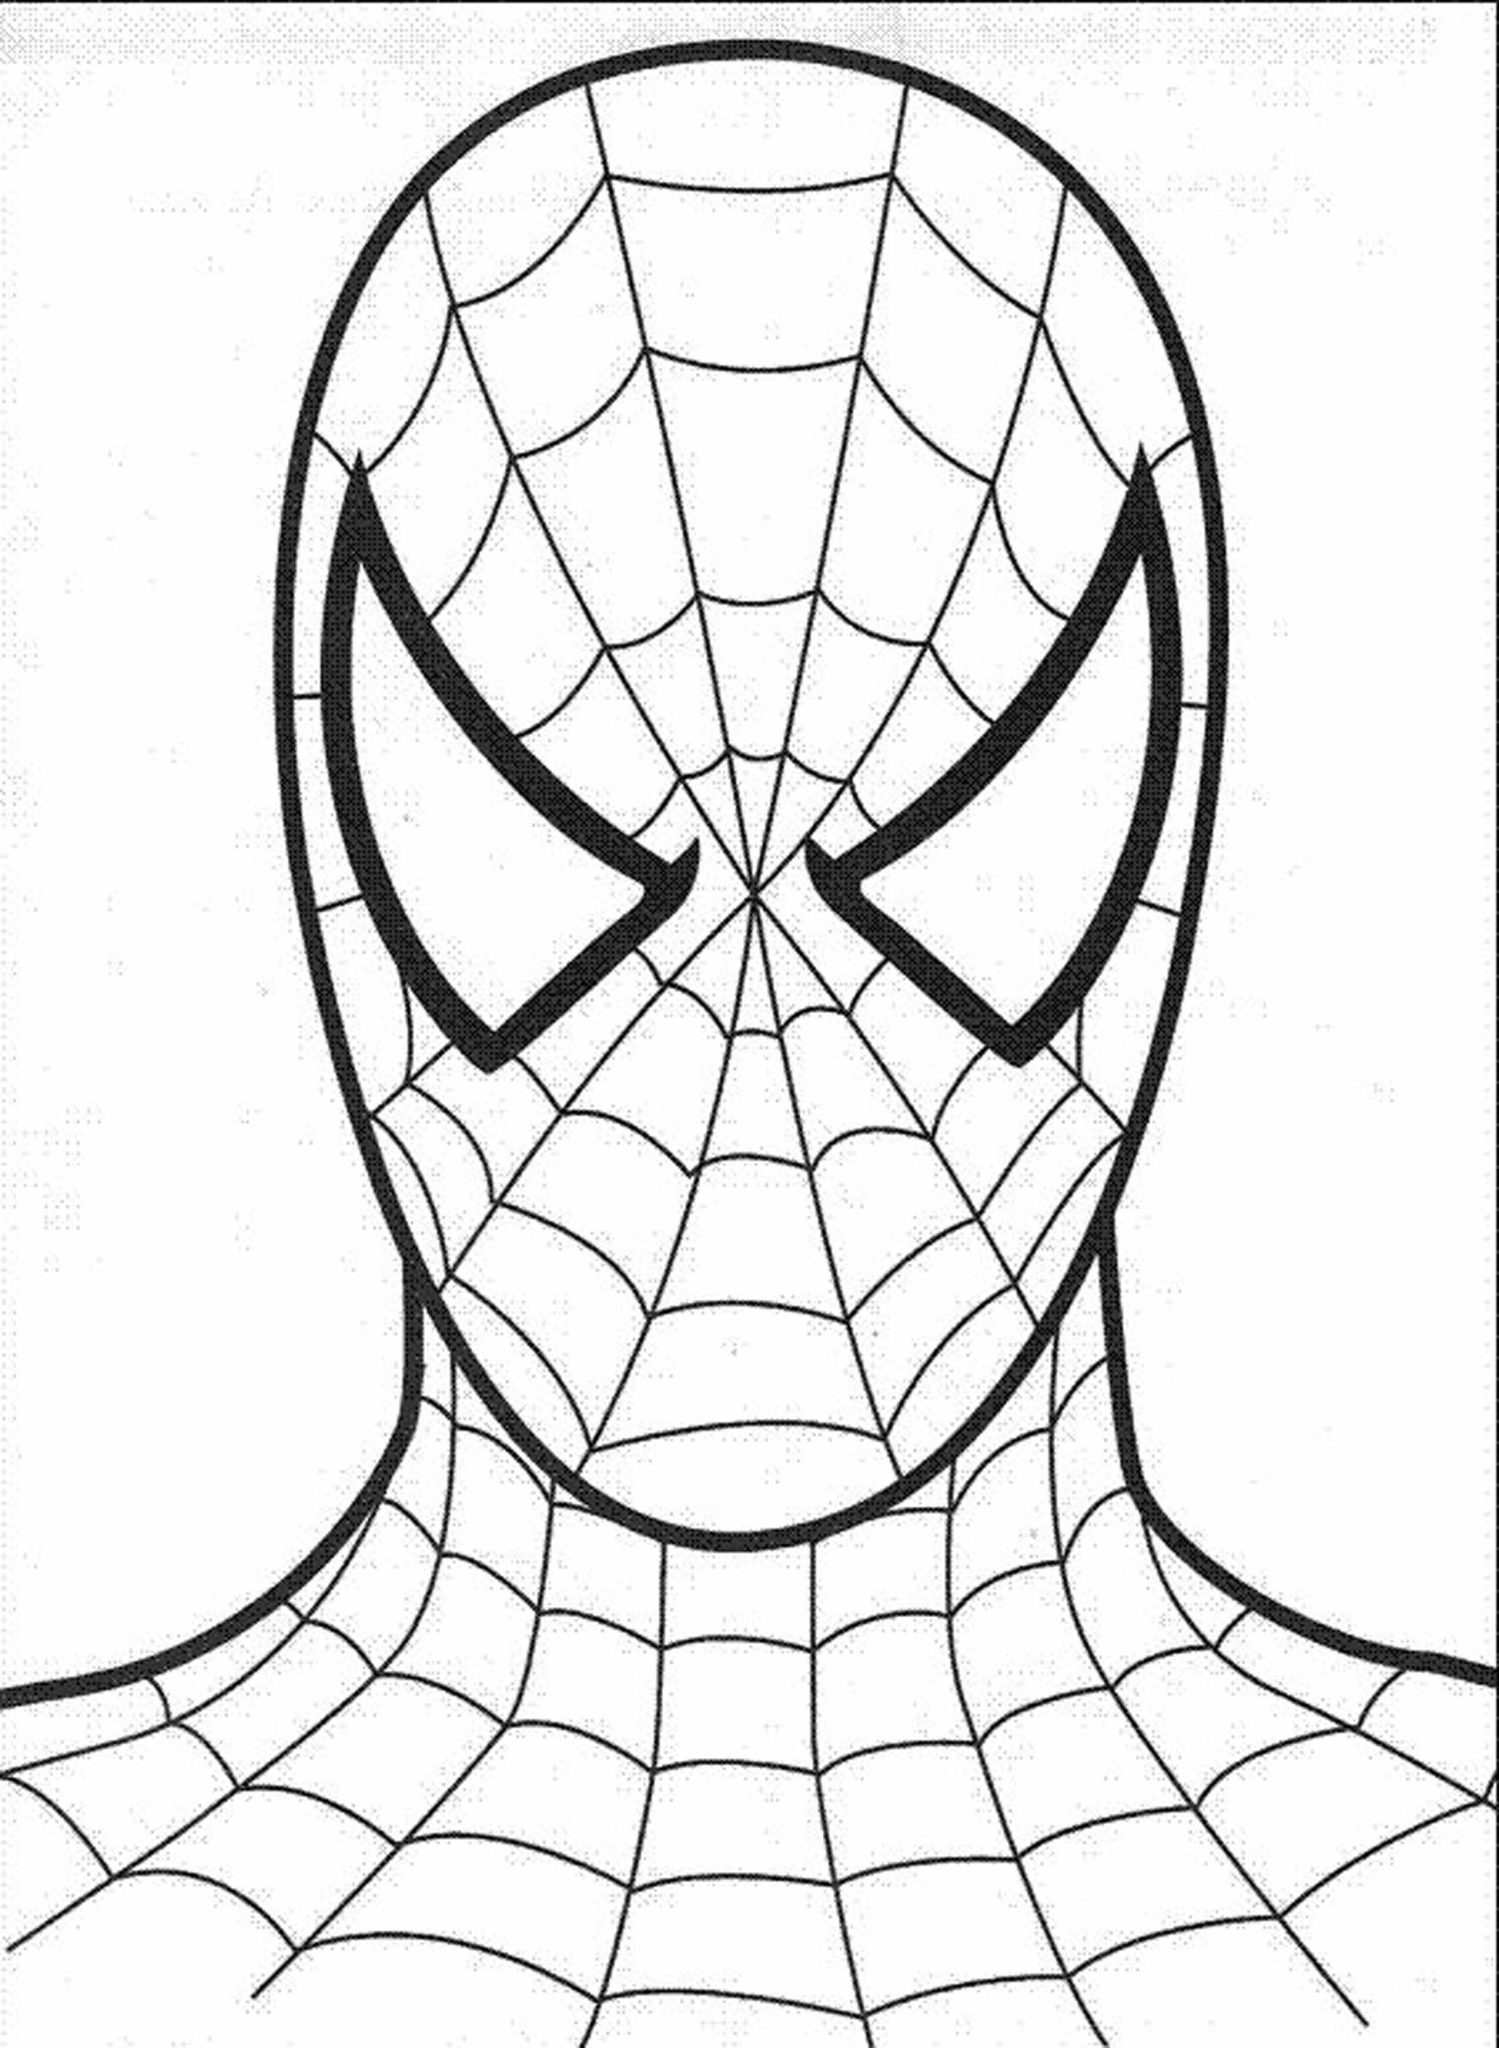 coloring-pages-for-boys-and-girls | | BestAppsForKids.com